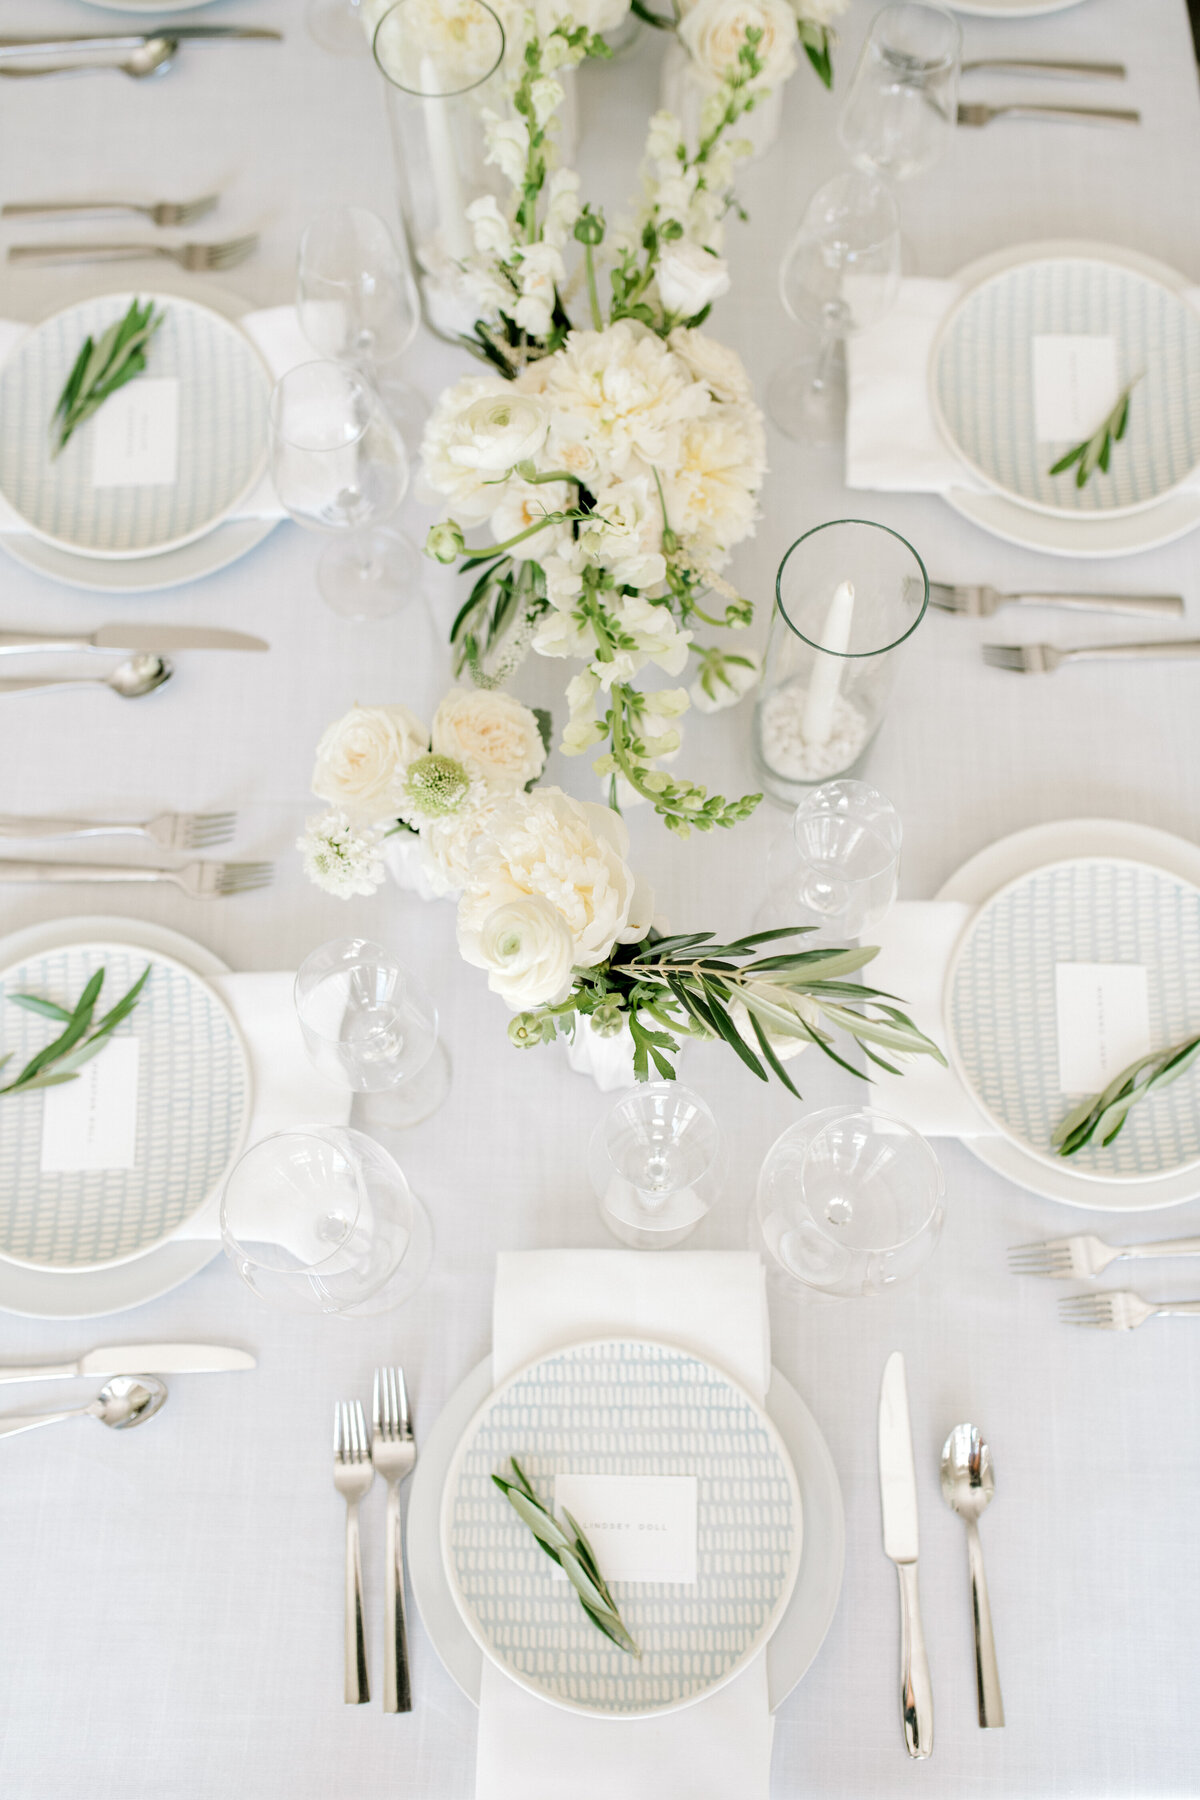 Minnesota wedding photographer, Minneapolis wedding photographer, Minnesota luxury photographer, minnesota light and airy photographer, minnesota light and airy wedding photographer, Wedding details